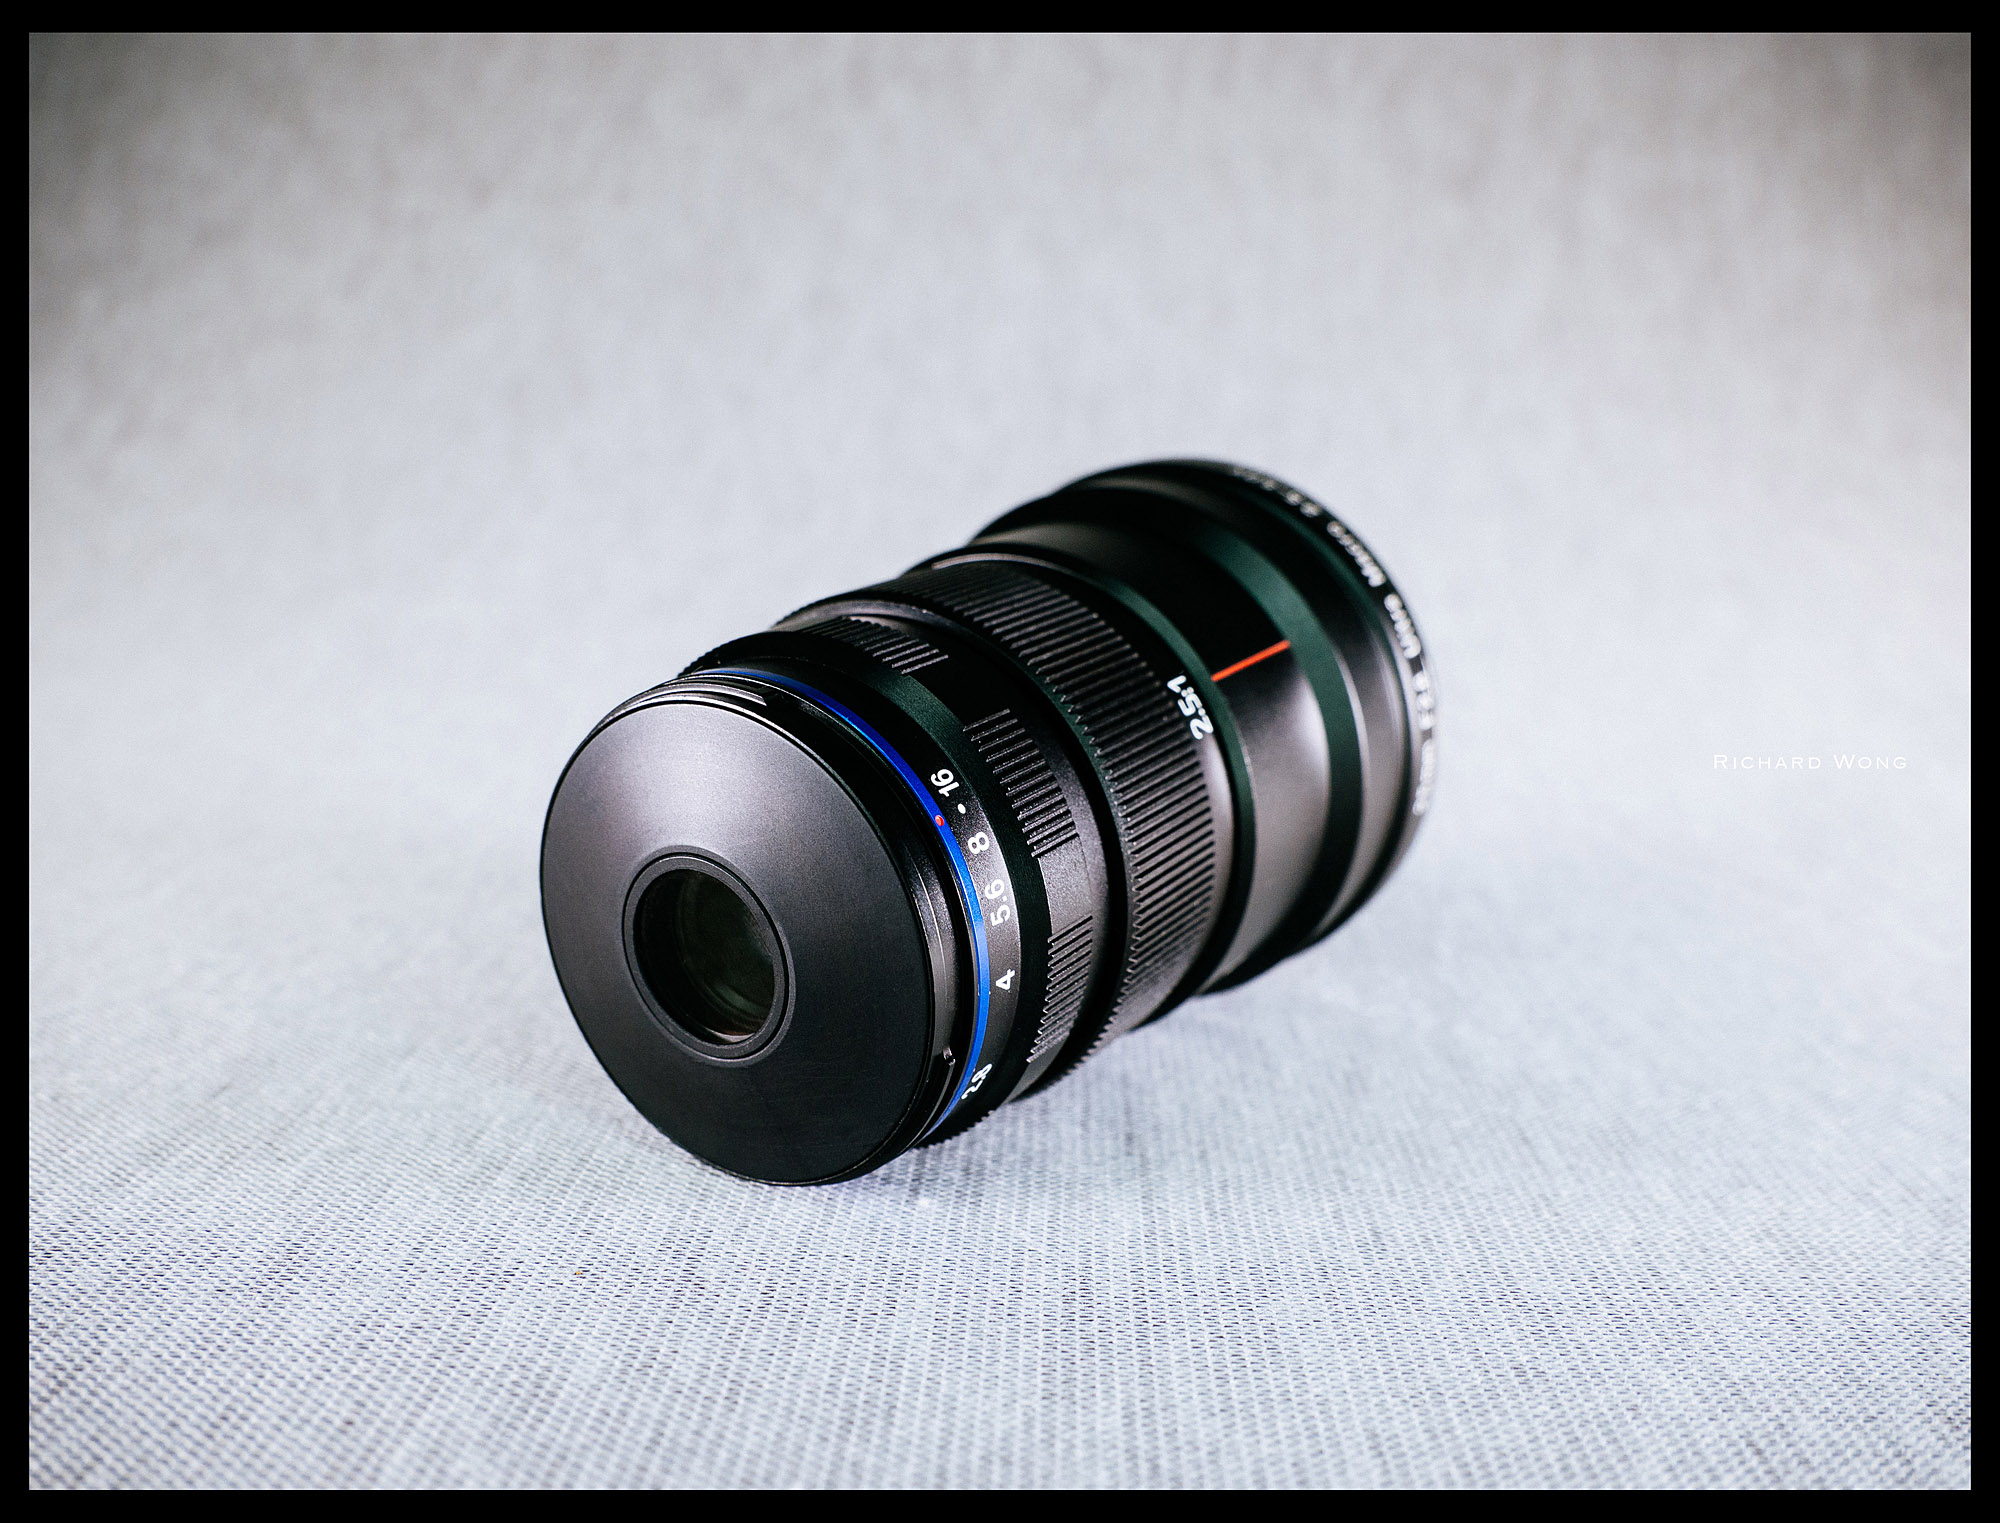 Laowa 25mm f/2 8 2 5x – 5x Ultra Macro lens review – Review By Richard